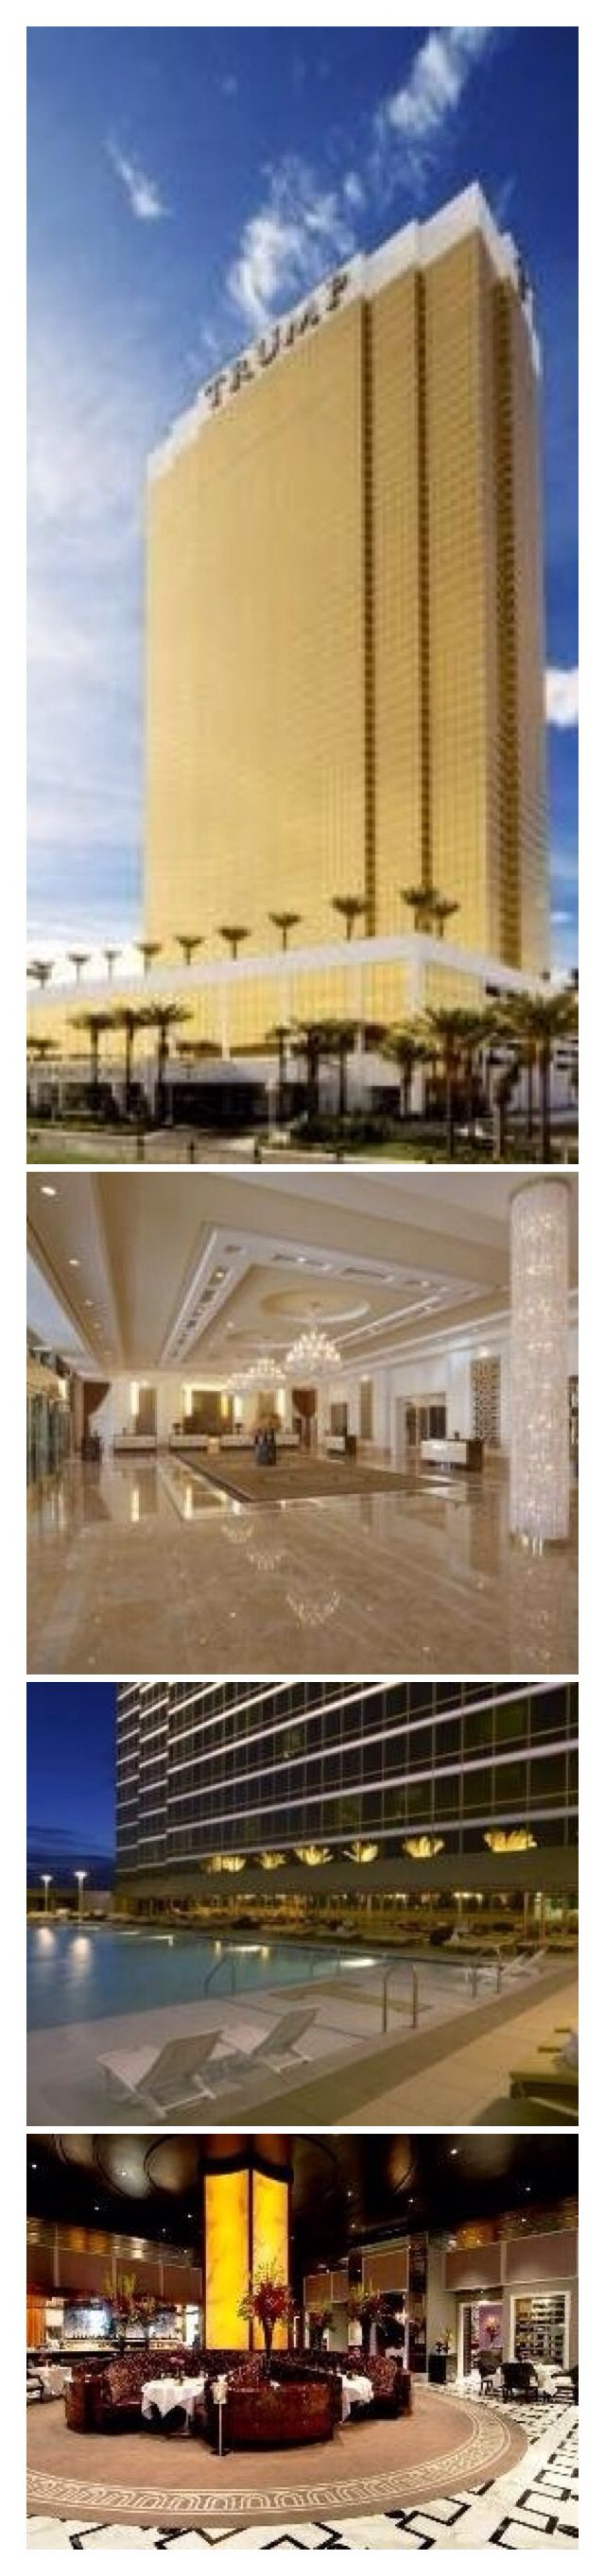 ~Trump Towers Hotel/Casino - Las Vegas Nevada | House of Beccaria